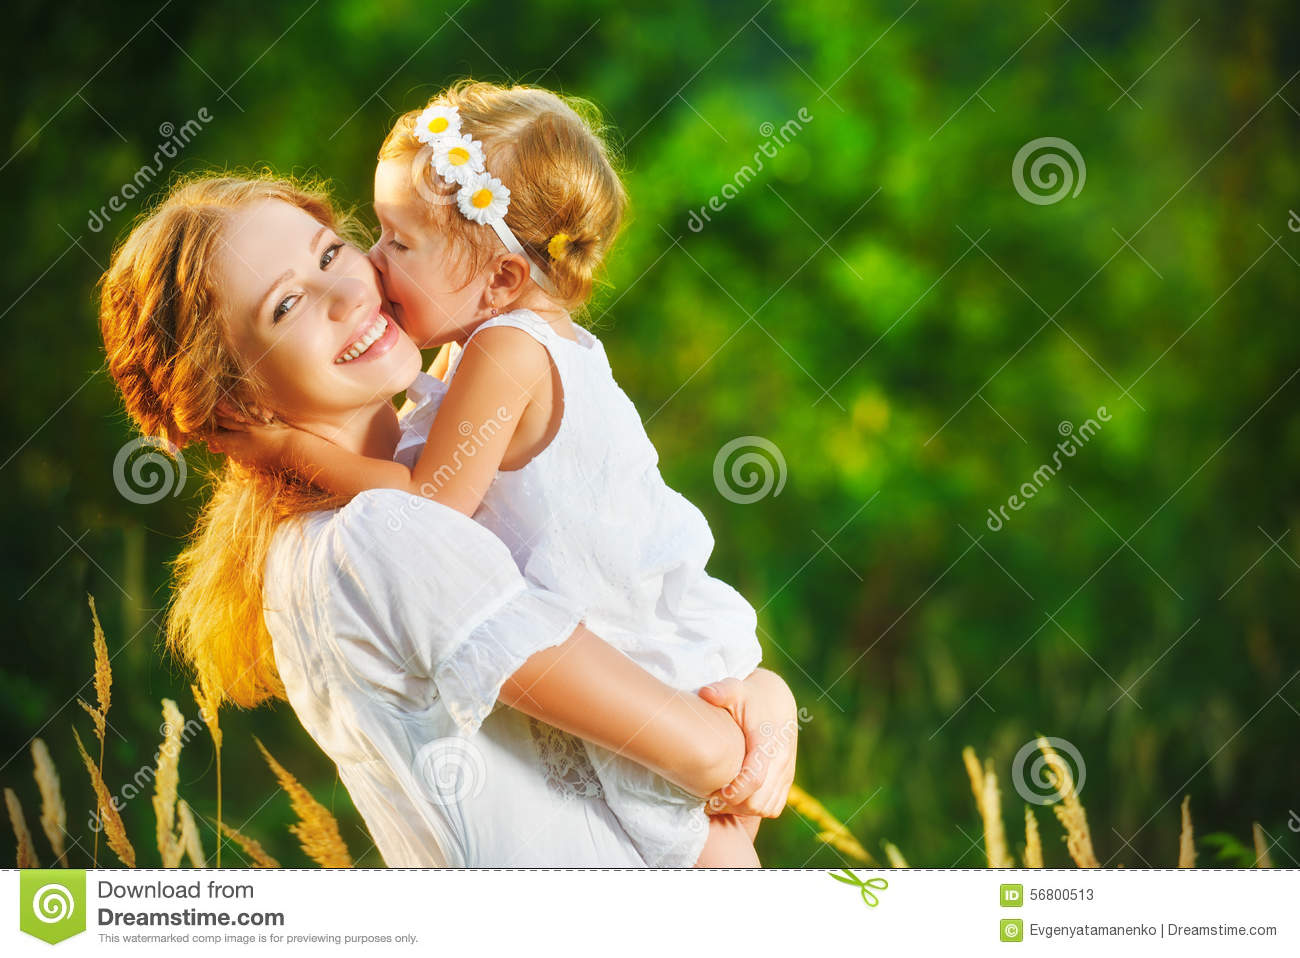 girl stock photos - royalty free pictures